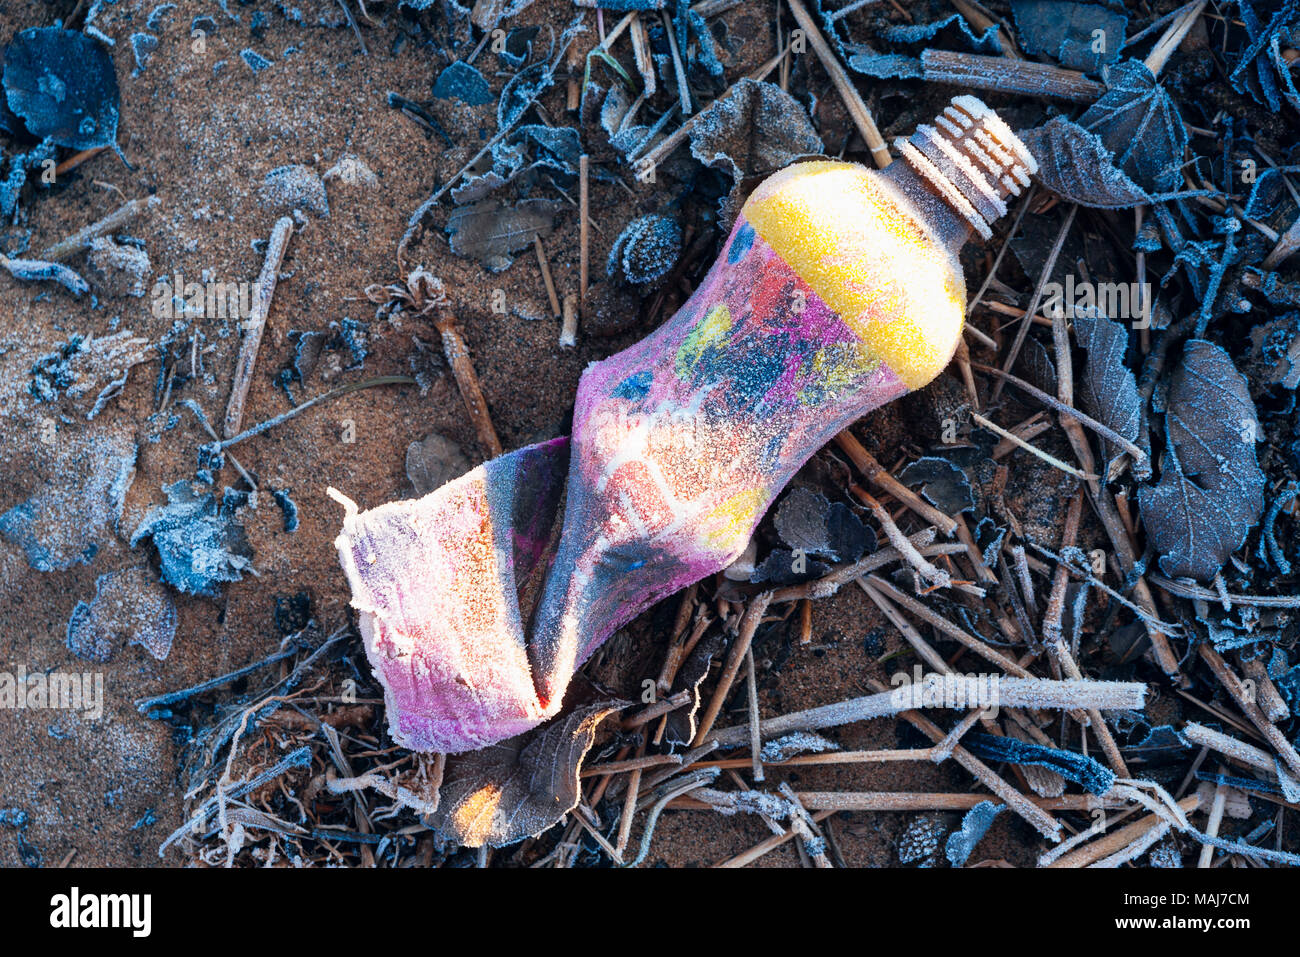 Litter covered in frost beside the River Ribble near Ribchester, Lancashire - Stock Image